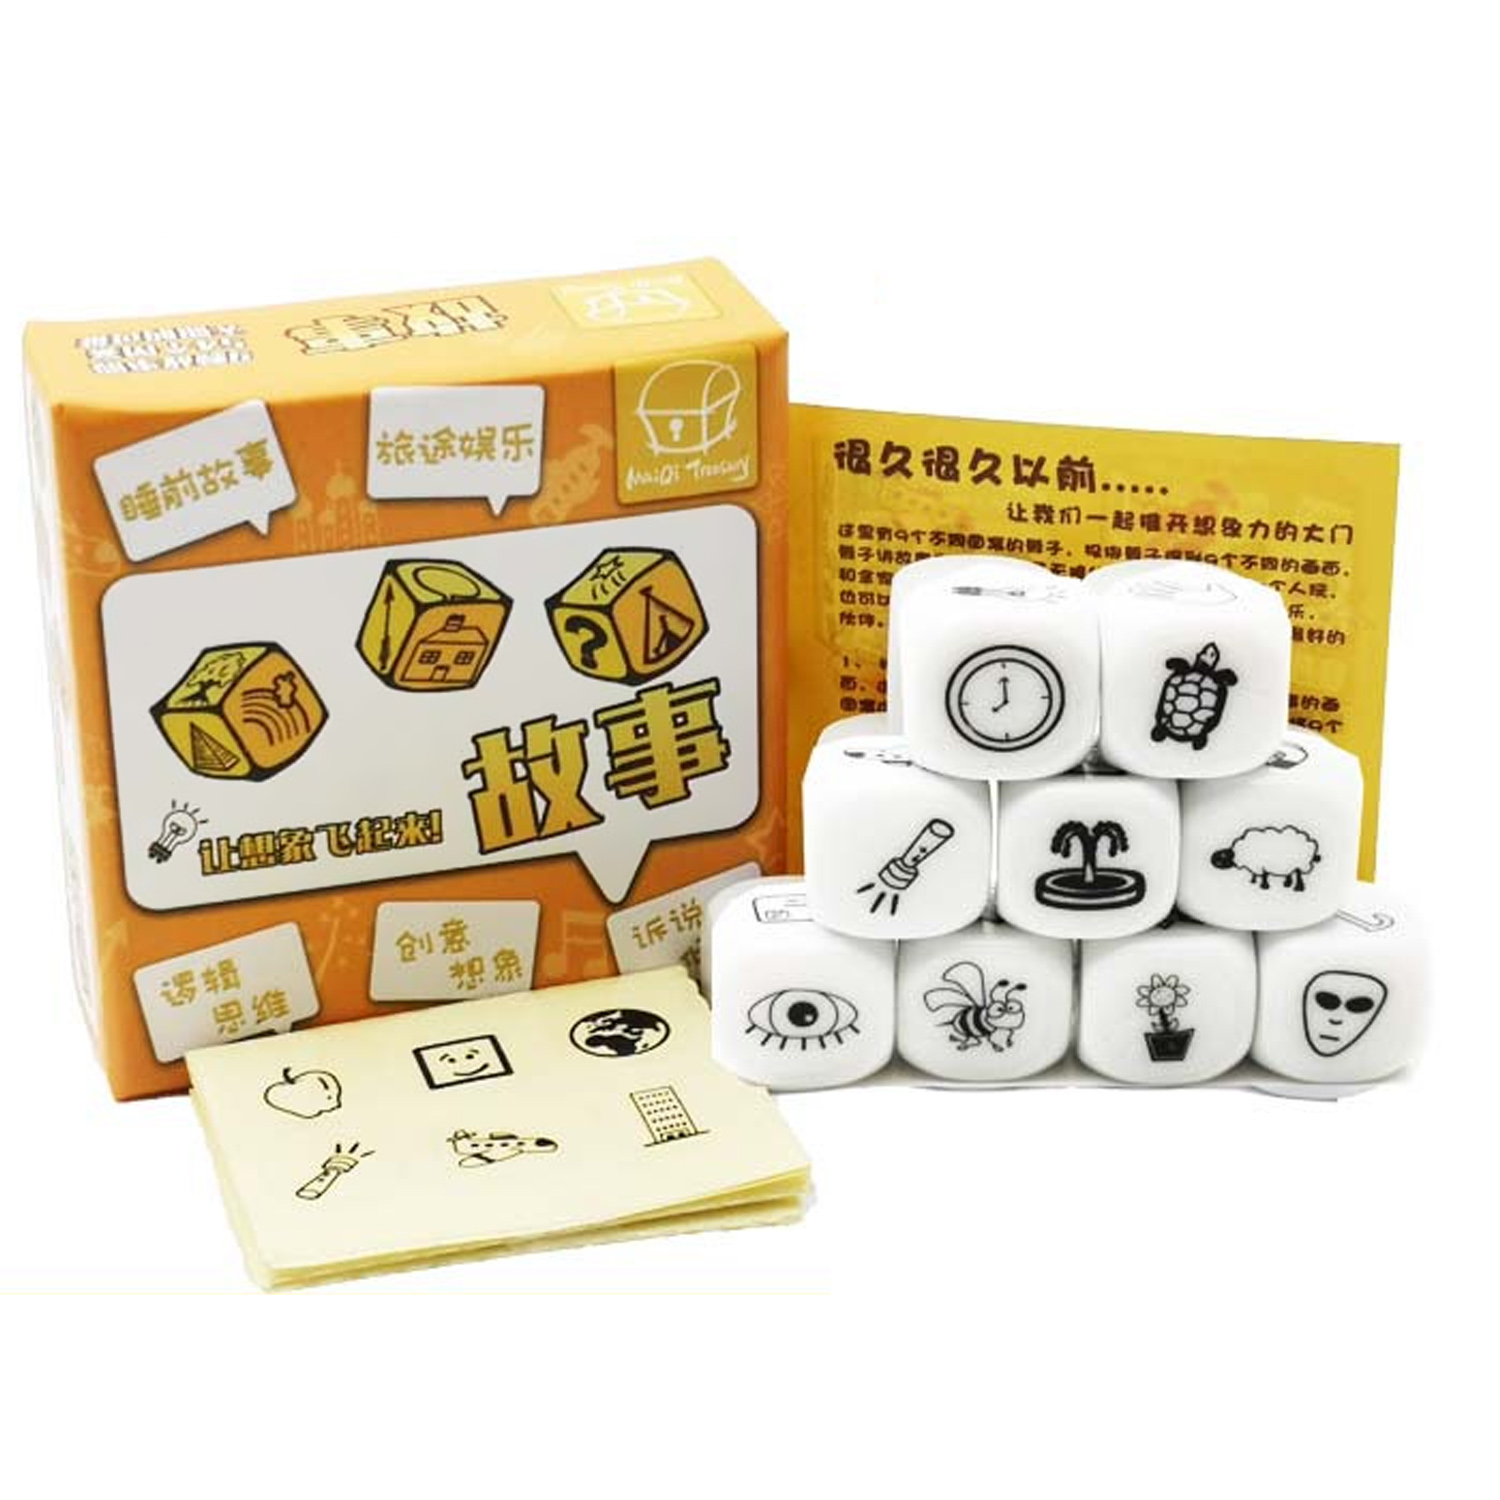 9pcs Cubes 54pcs Images Game Puzzle Telling Story Dice Toy For Children DIY Toddlers Storytelling Game Imaginative Play Supplies